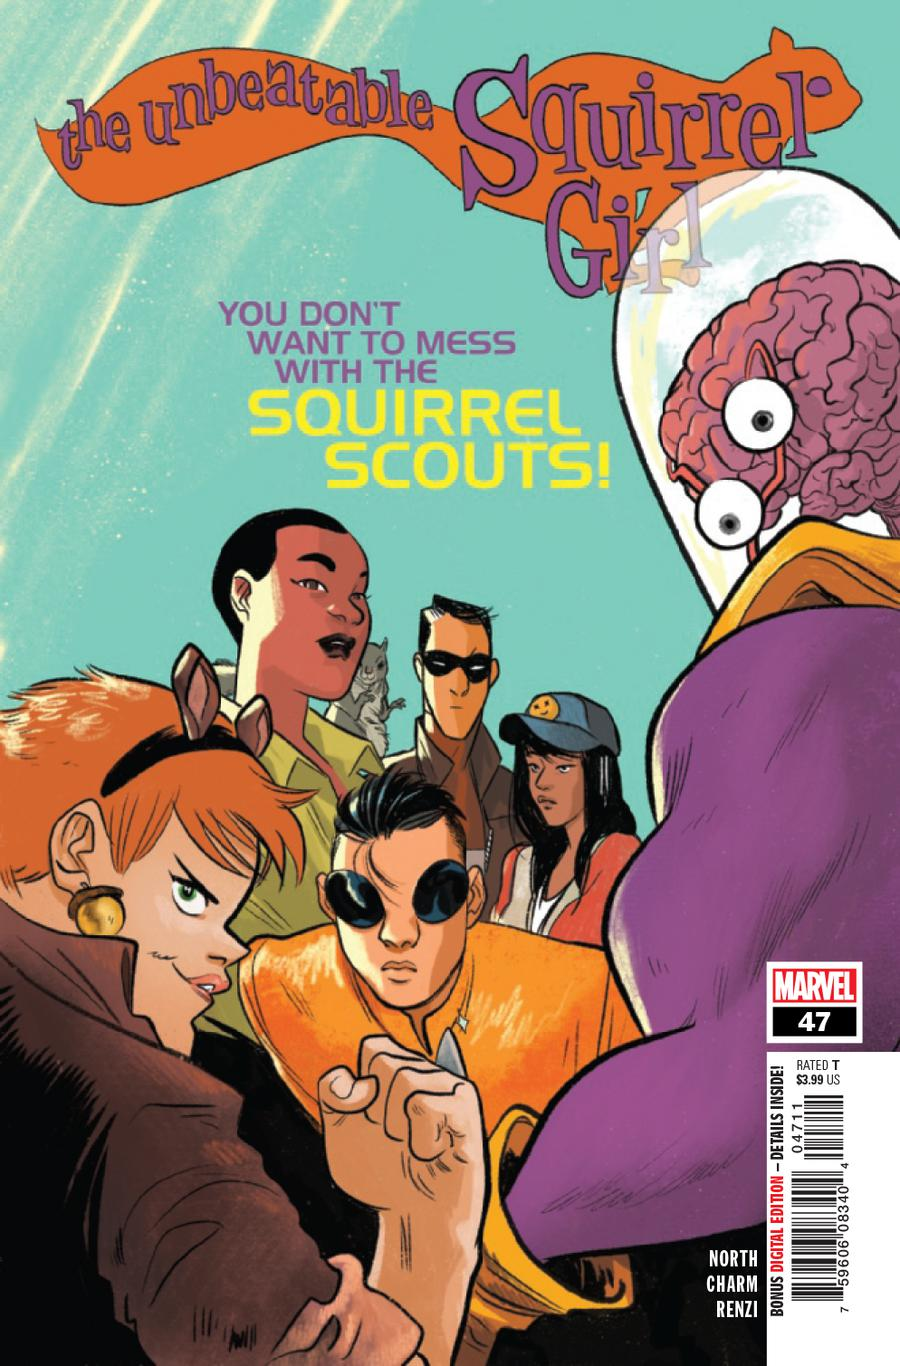 Unbeatable Squirrel Girl Vol 2 #47